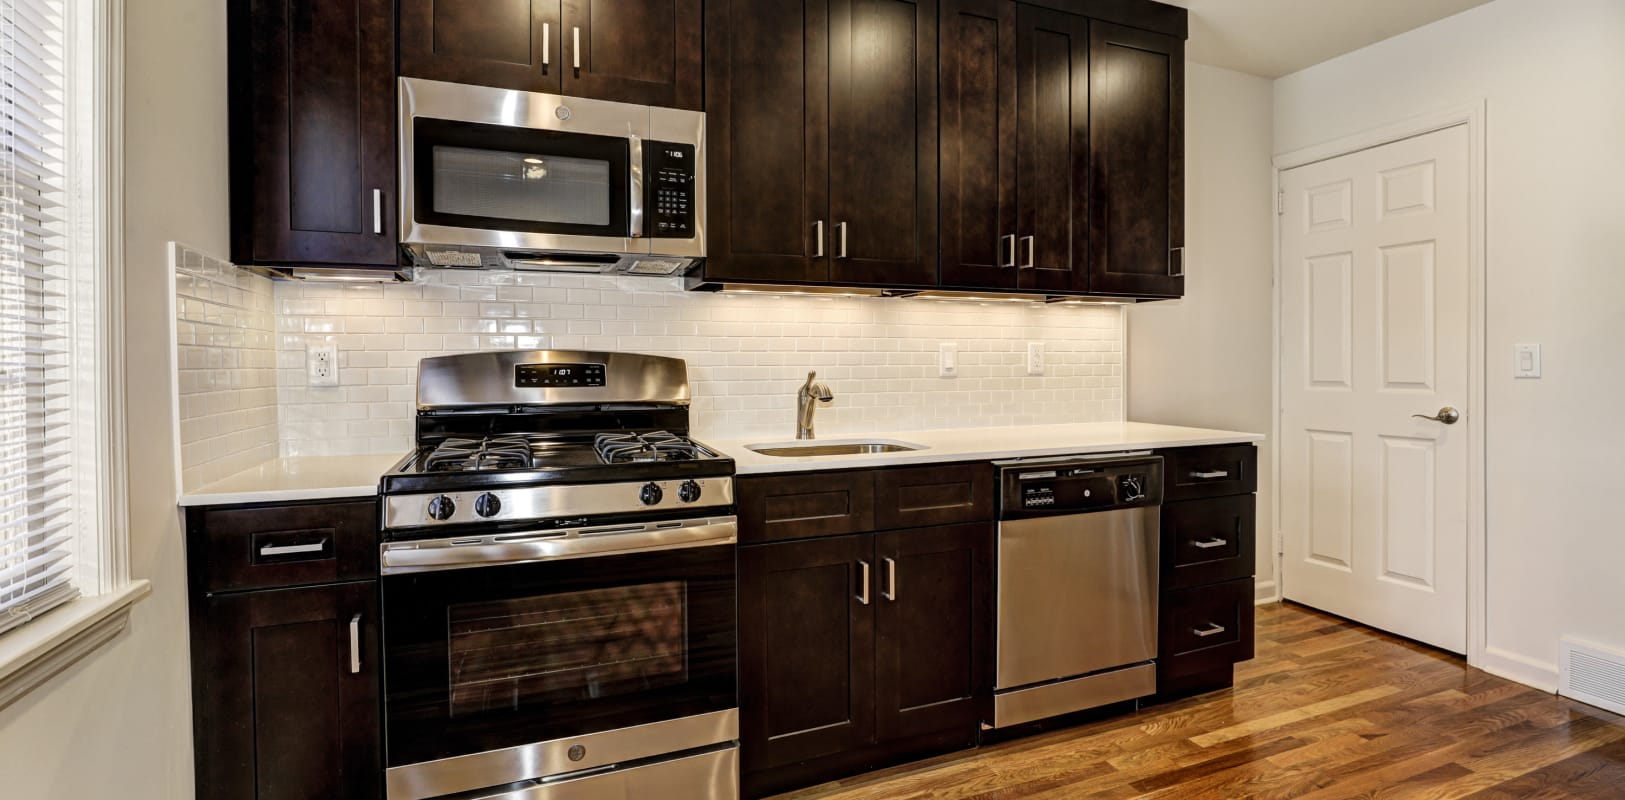 Spacious kitchen with stainless-steel appliances and wood-style flooring at General Wayne Townhomes and Ridgedale Gardens in Madison, New Jersey